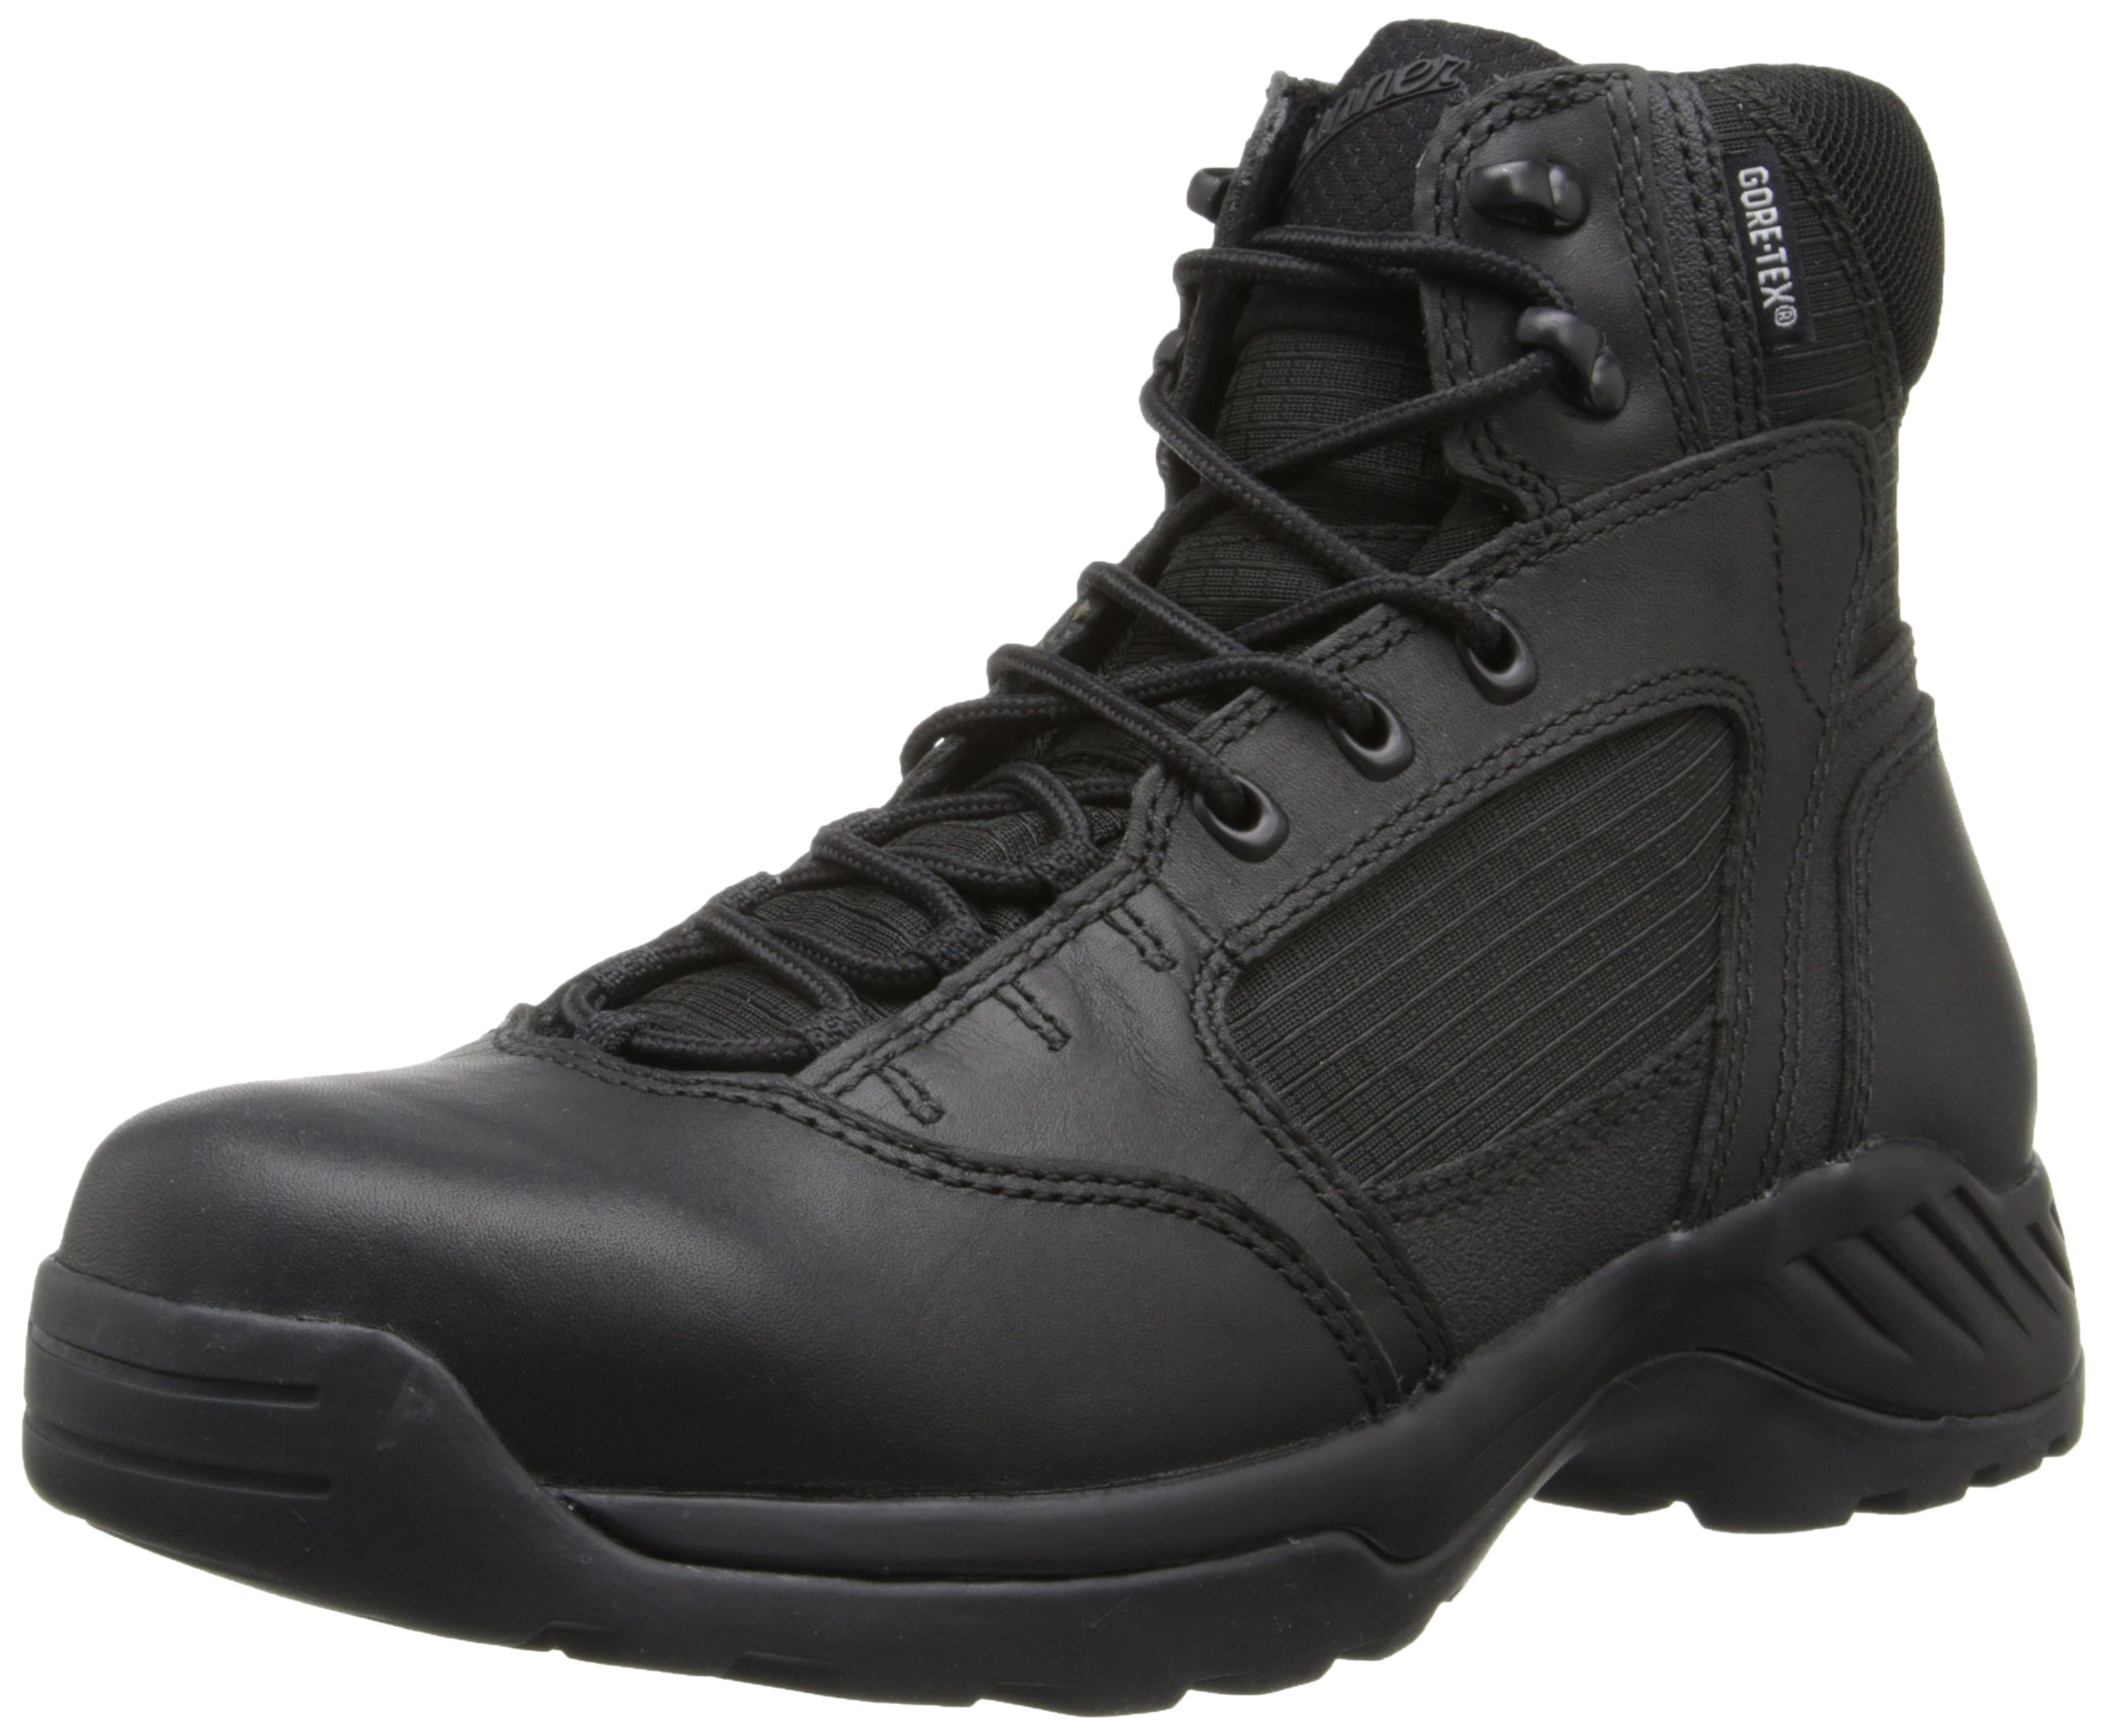 Danner Men's Kinetic 6 Inch GTX Law Enforcement Boot, Black, 10.5 D US